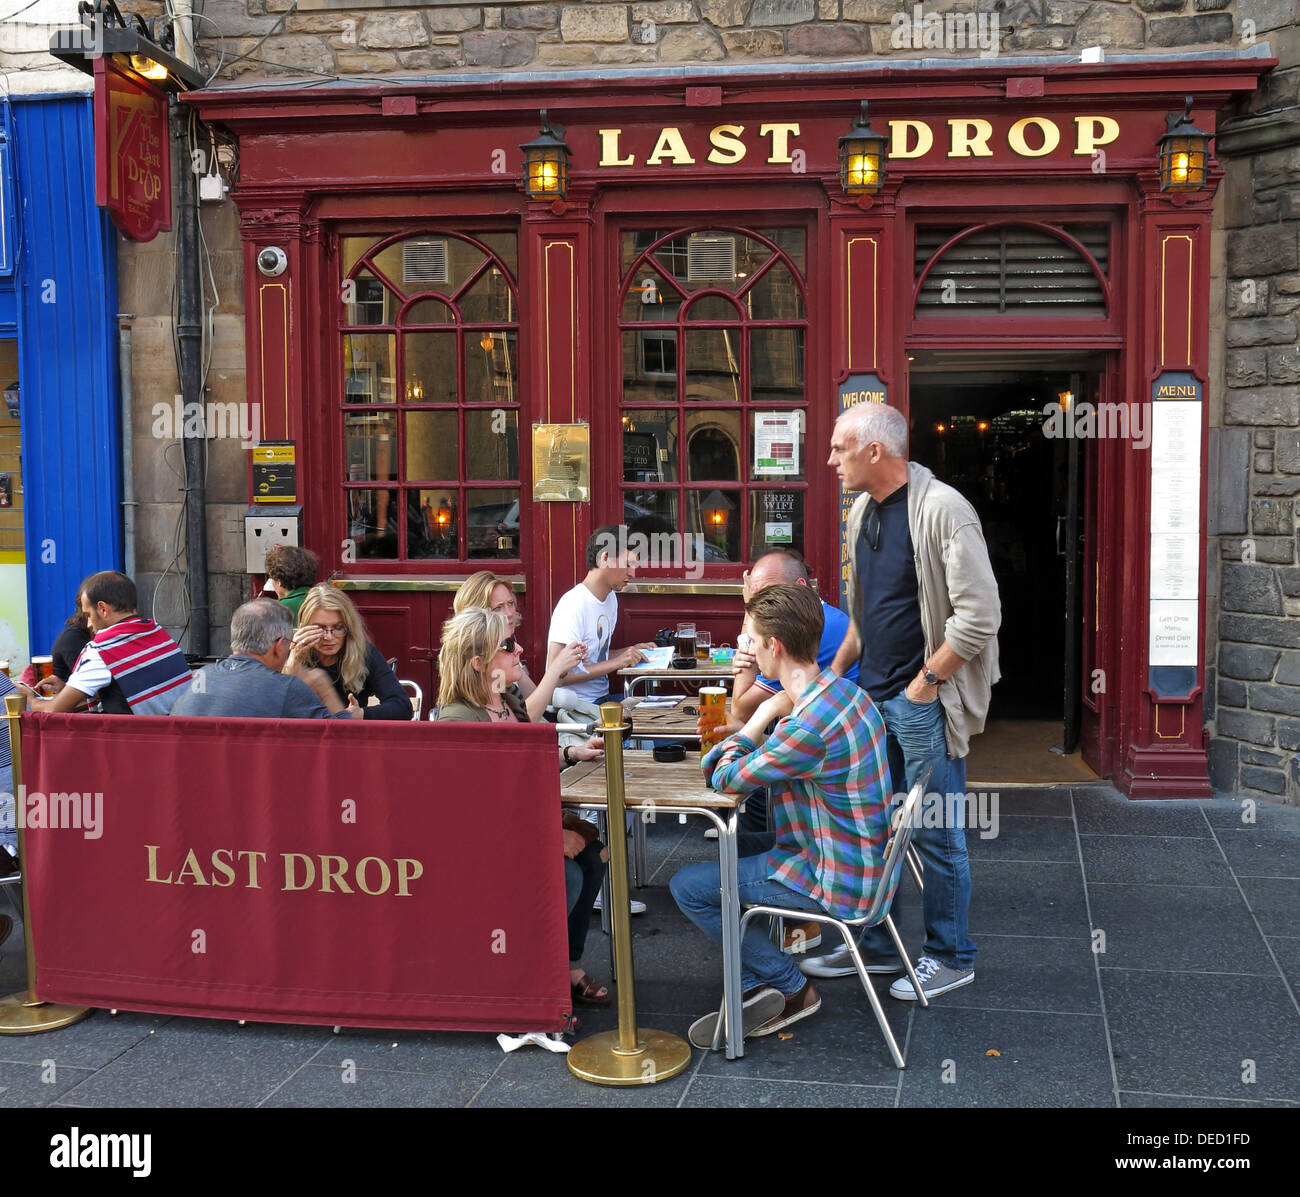 Last Drop, Tourist Bar, Grassmarket, Edinburgh, Scotland, UK - Stock Image